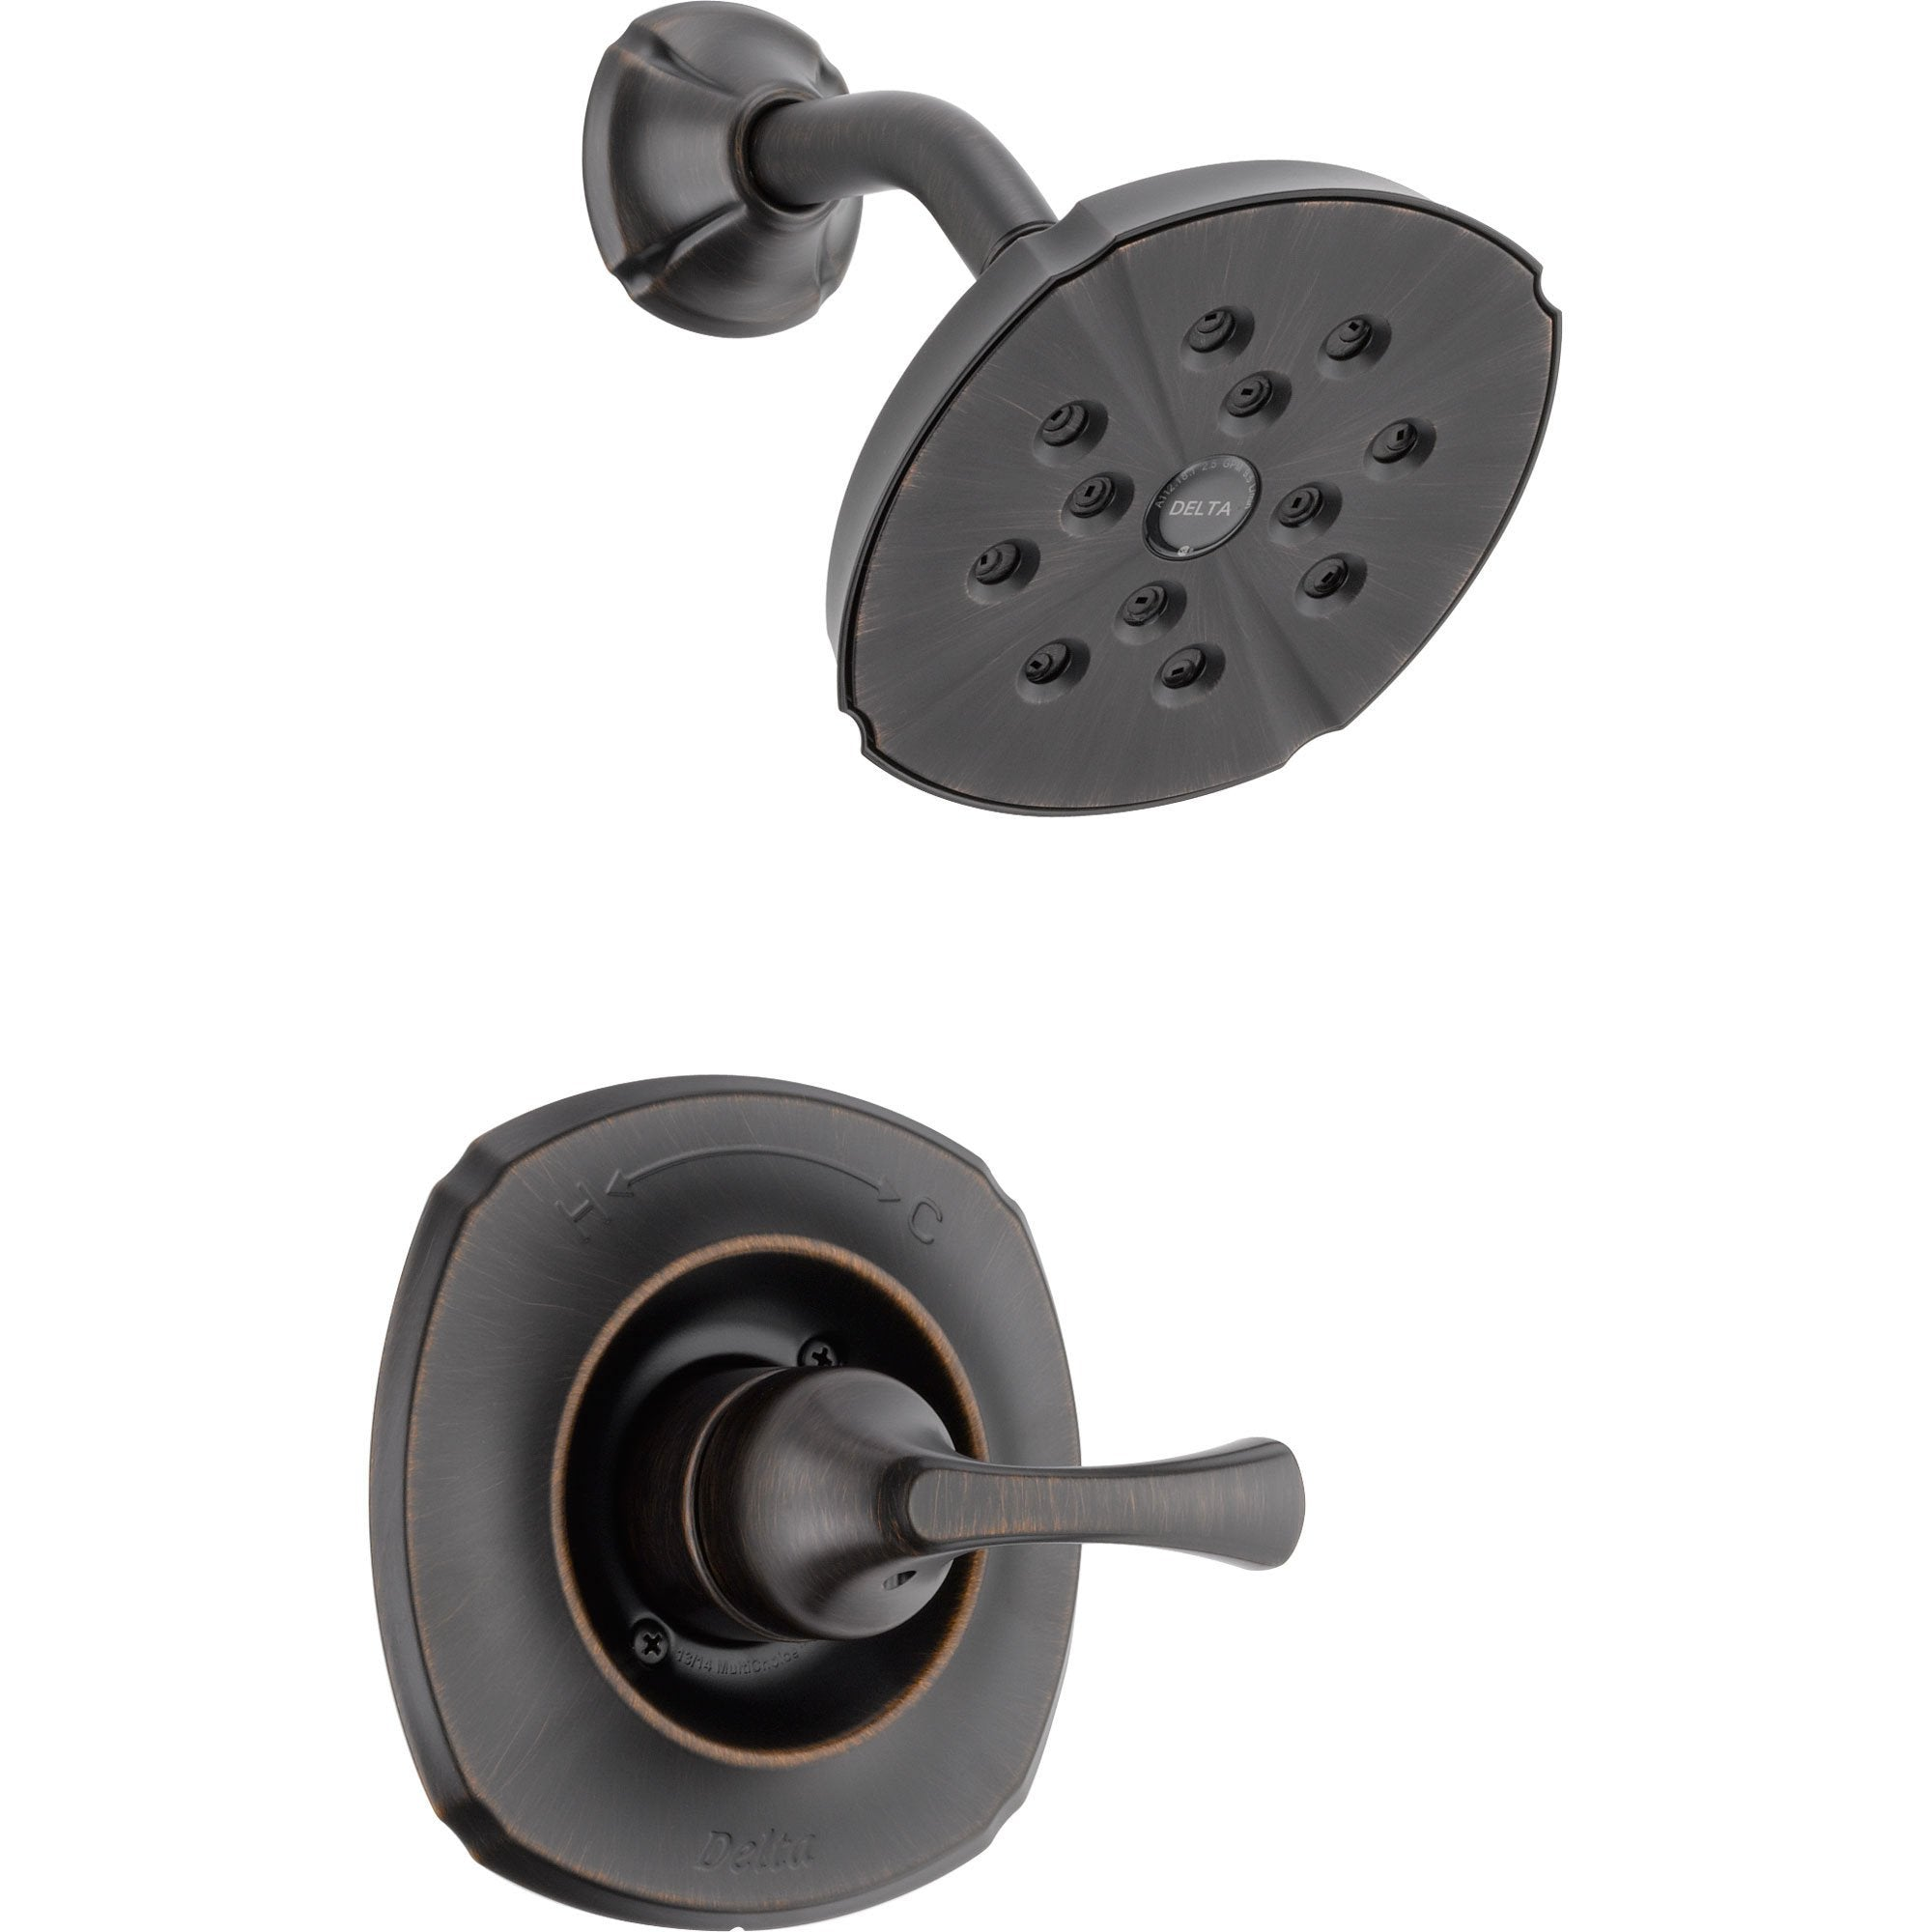 Delta Addison Venetian Bronze Modern Single Handle Shower Faucet Trim 476399